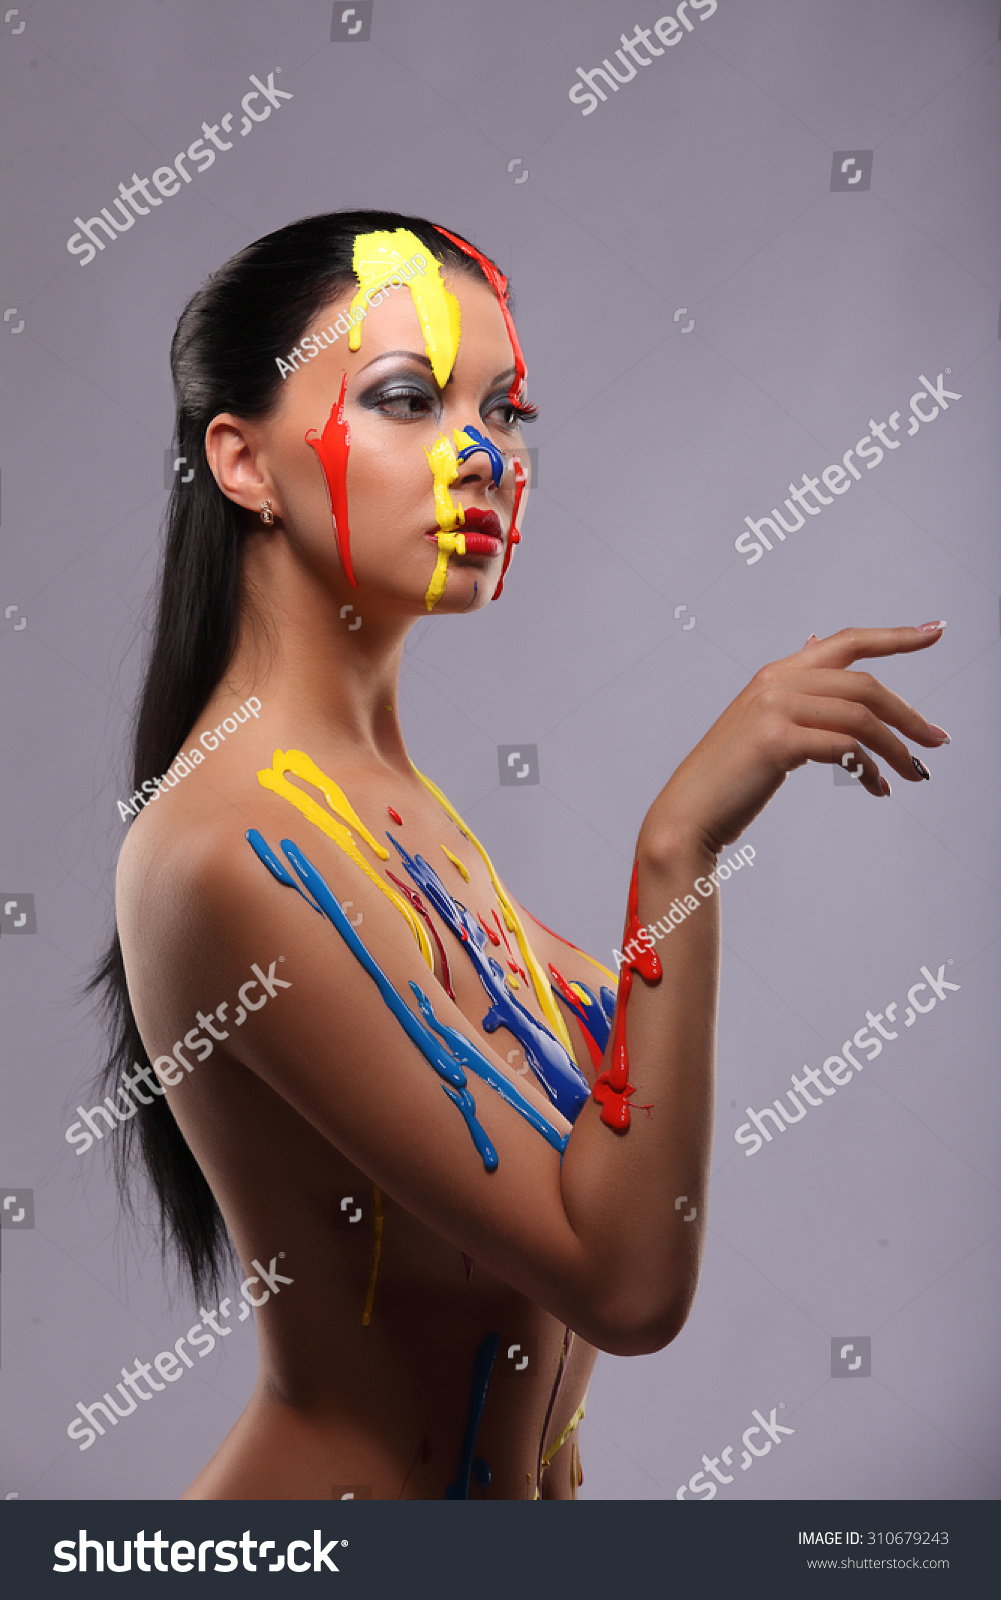 Portrait Woman Painted Conceptual Body Art Stock Photo Edit Now 310679243